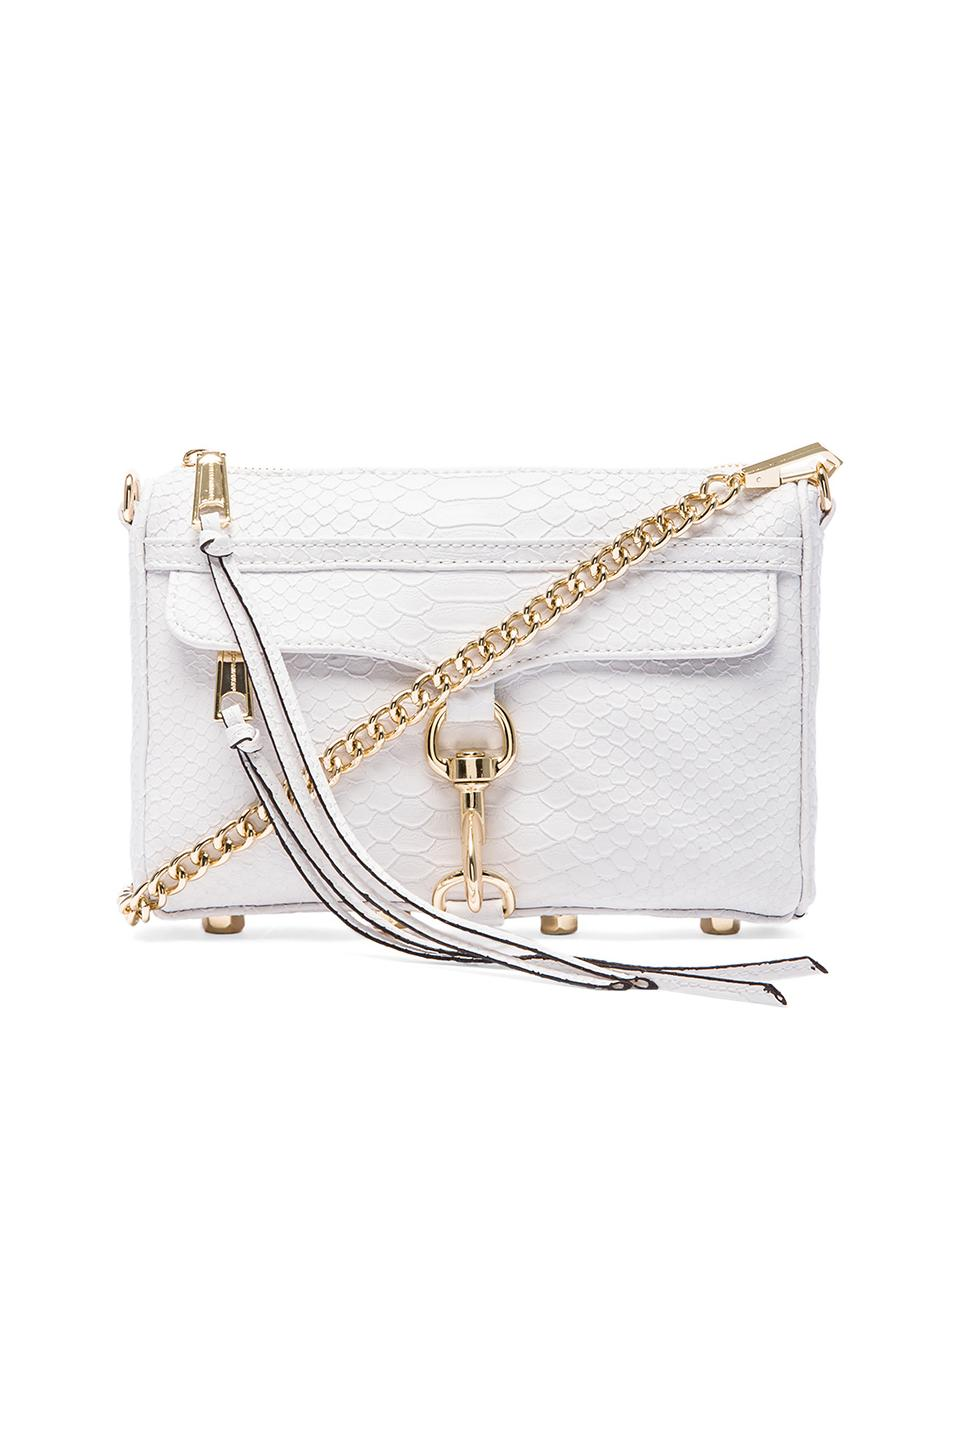 Rebecca Minkoff Mini MAC in White Snake